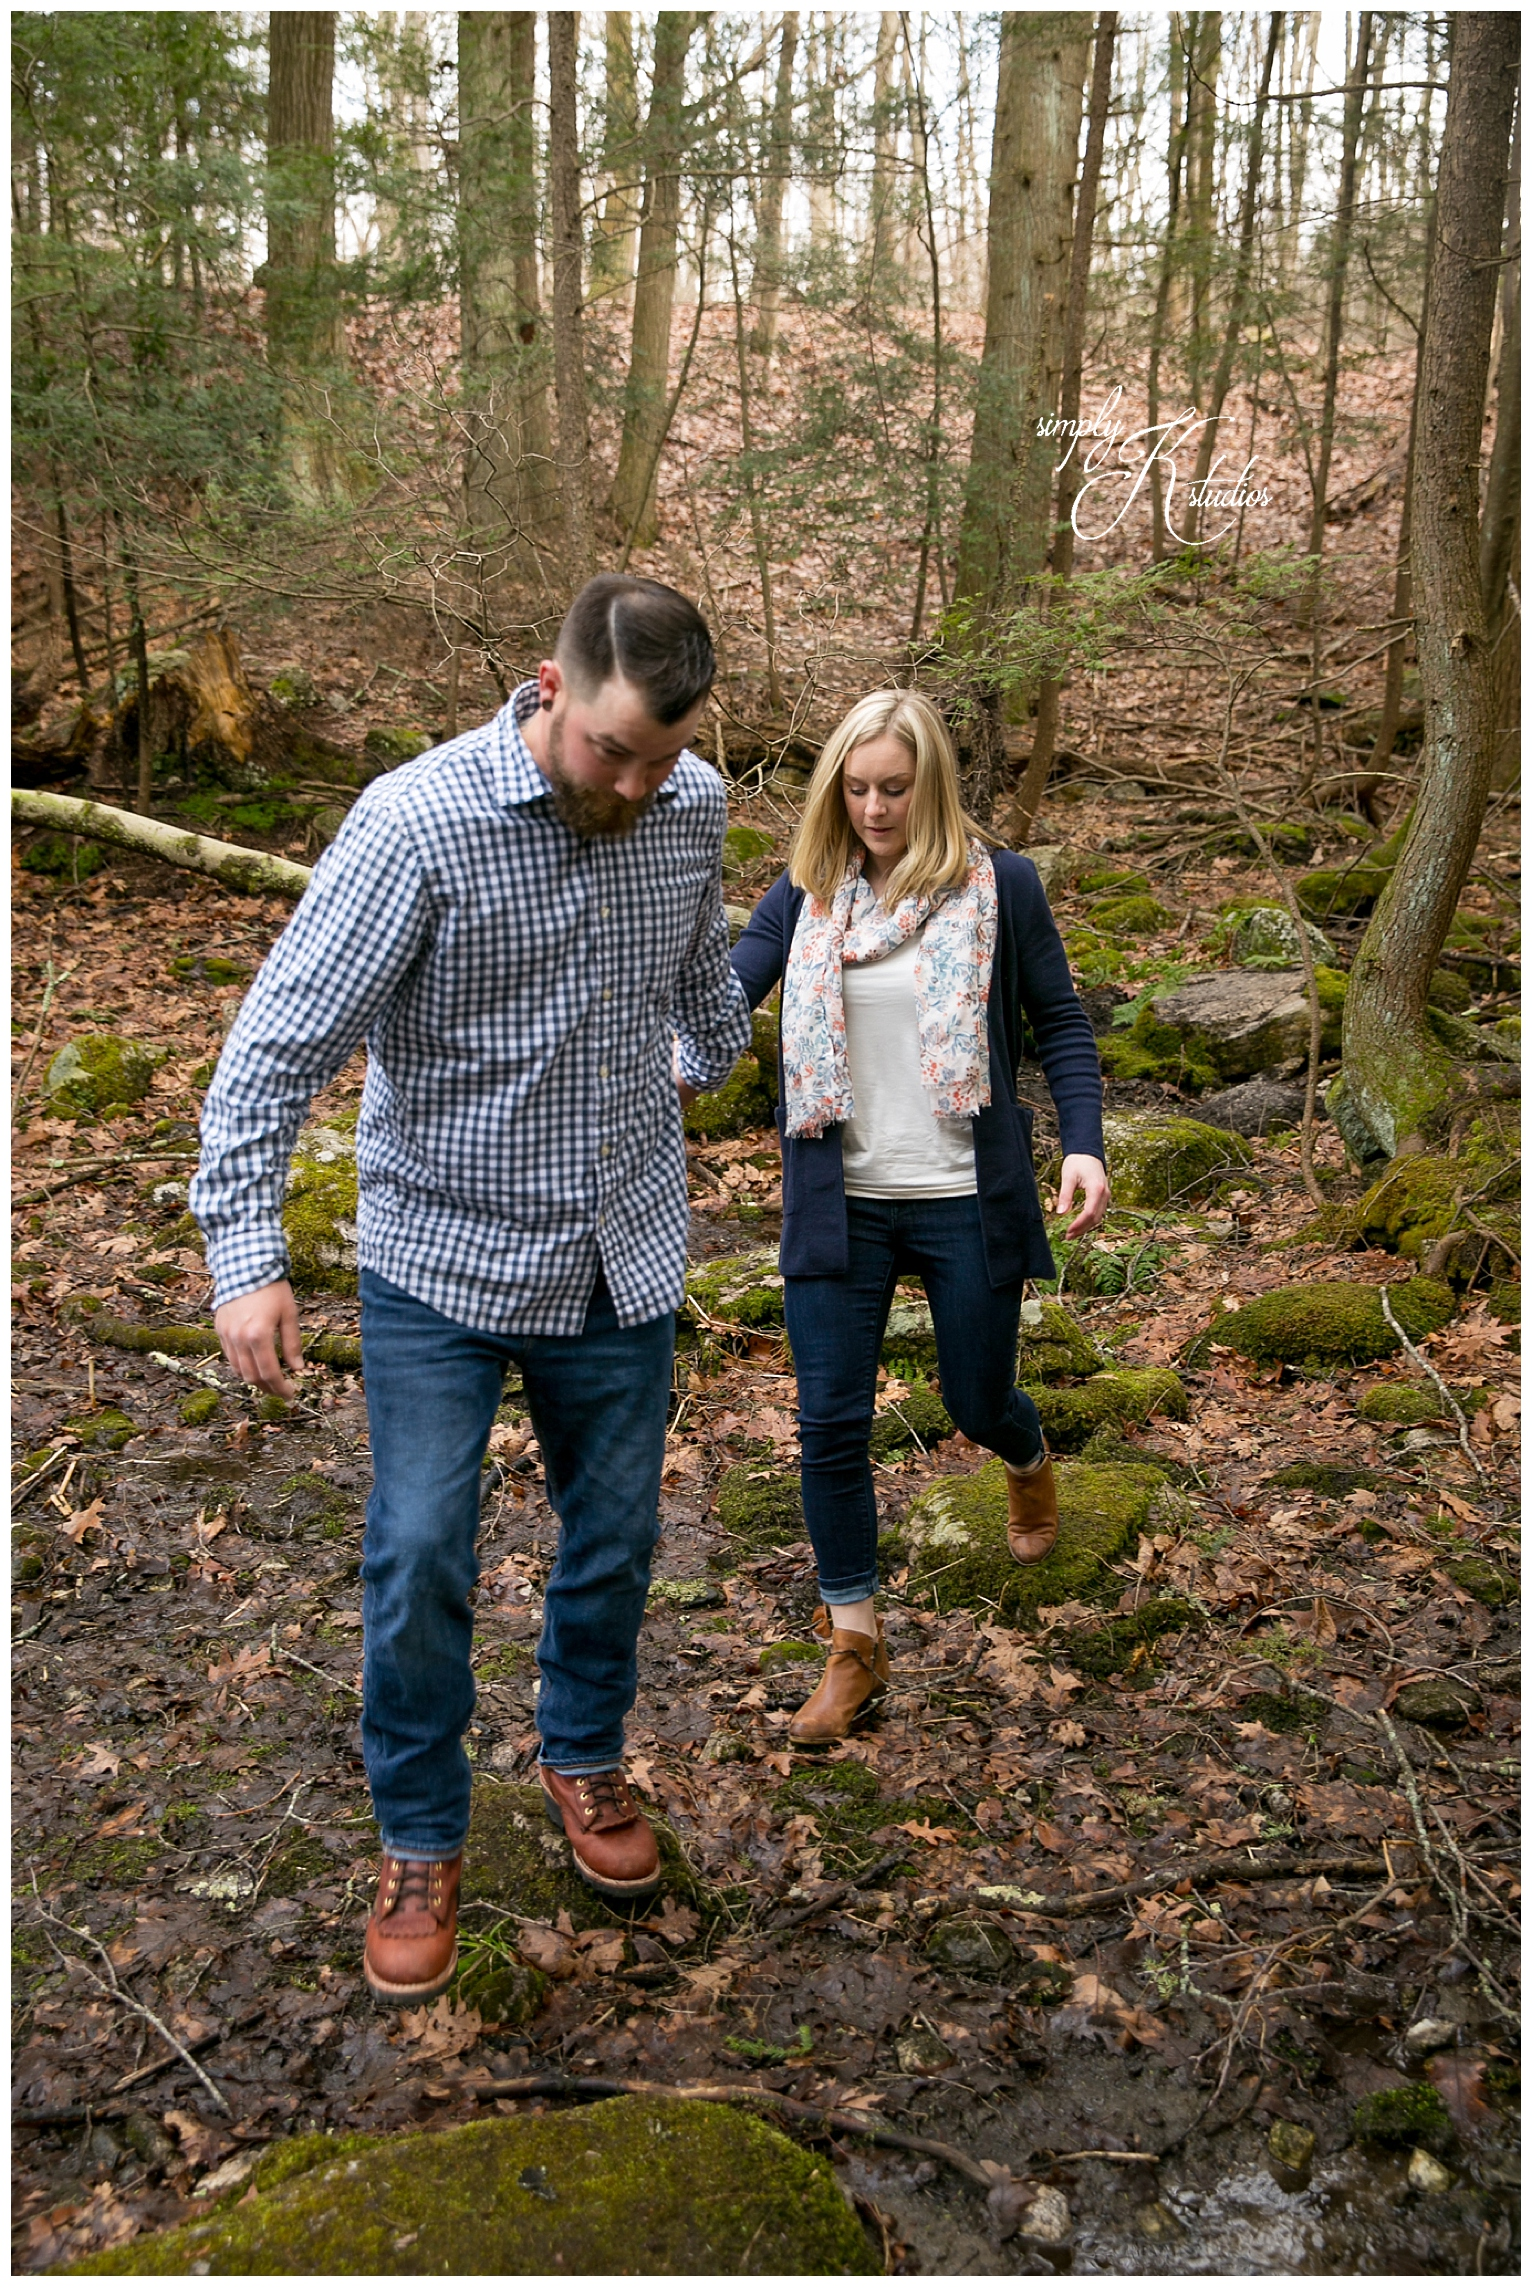 Hiking Engagement Session.jpg